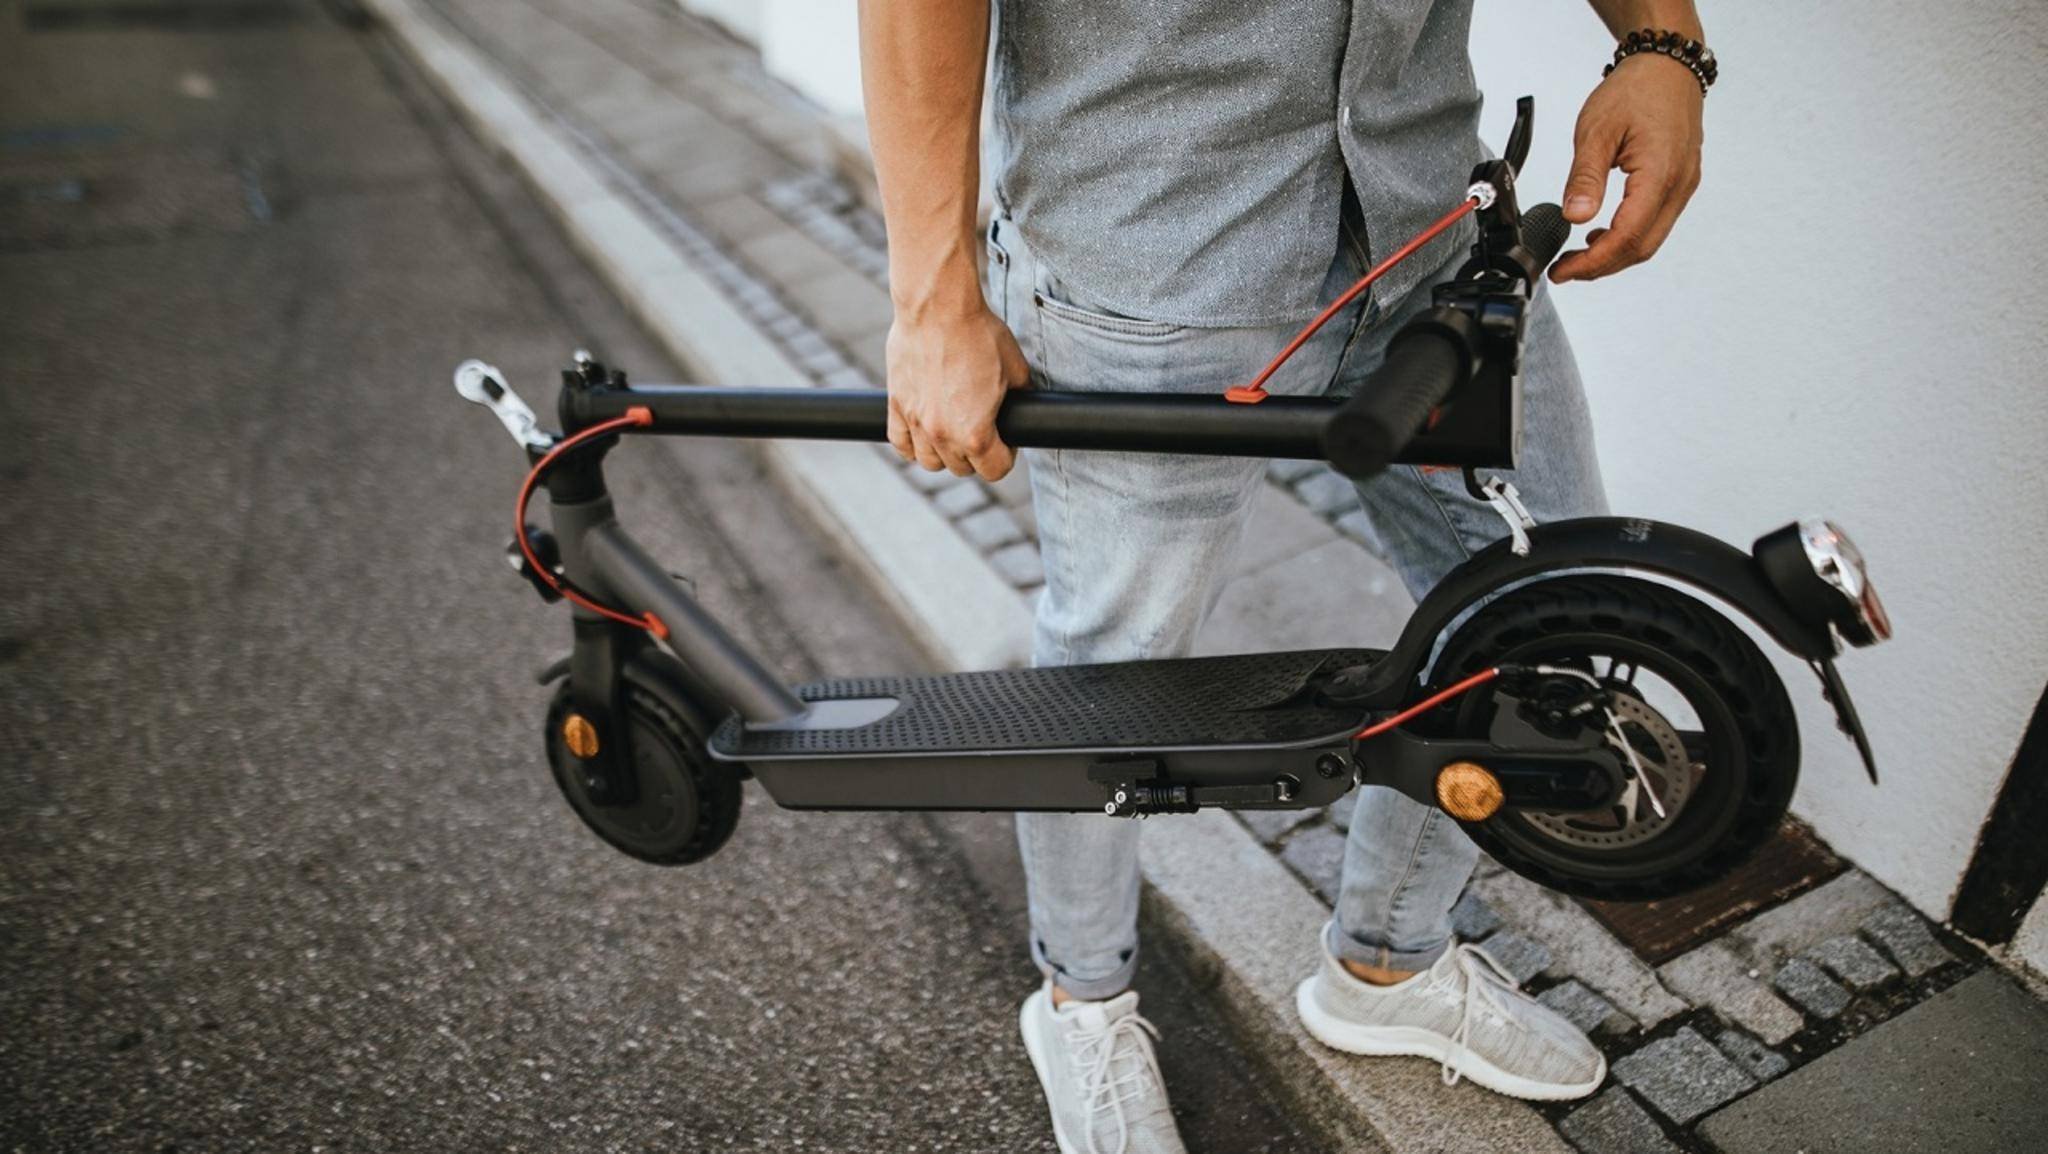 TechnoStar E-Rich E-Scooter